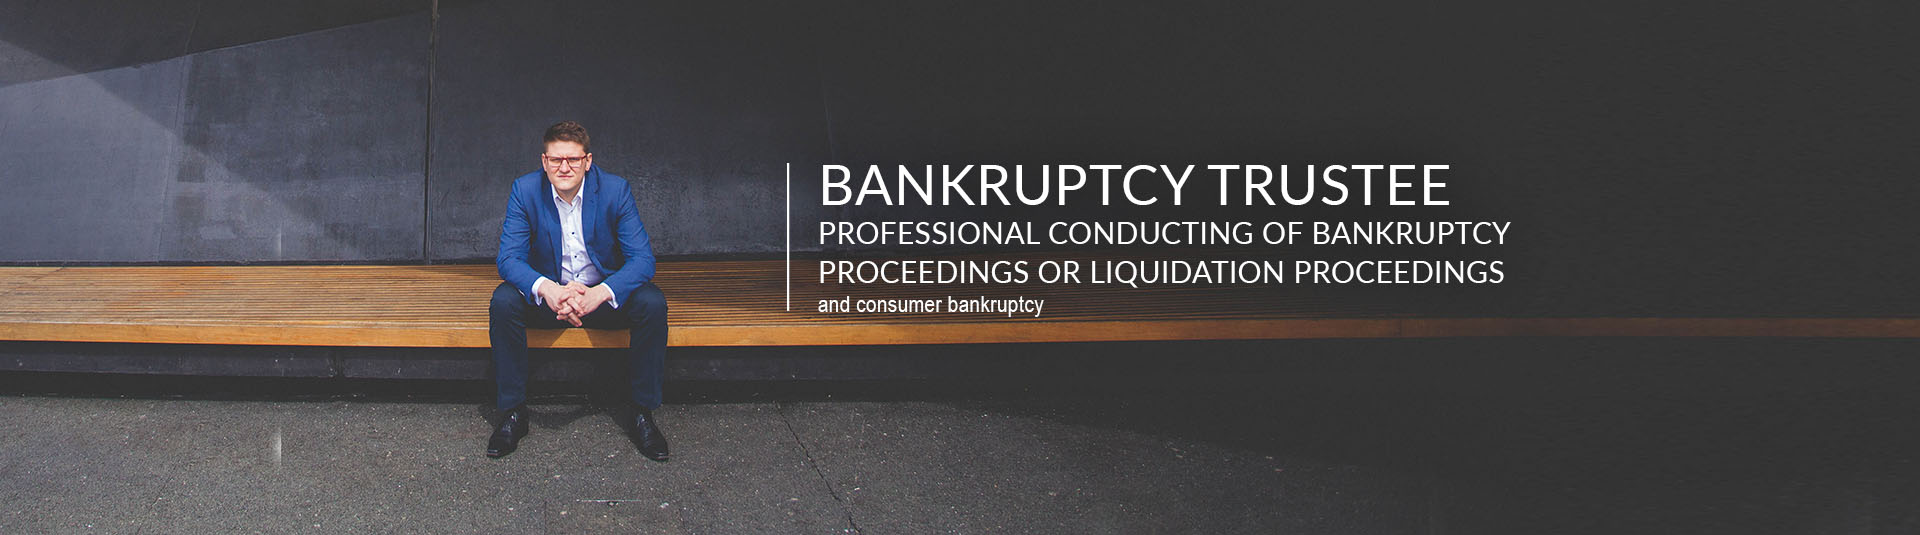 Bankruptcy trustee